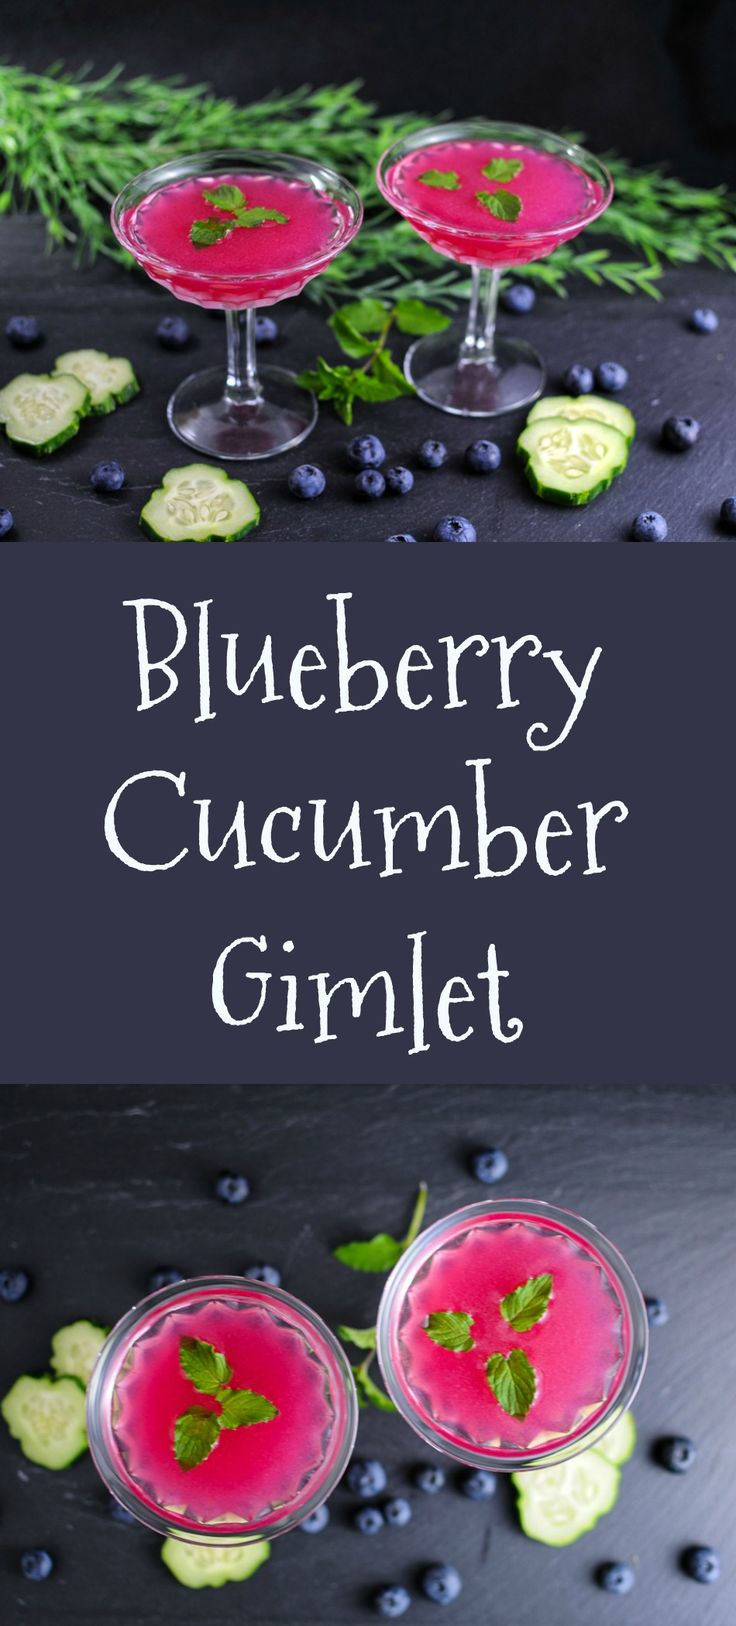 Blueberry Cucumber Gimlet - gin, blueberries, cucumber, lime  craft cocktails, recipe, gin cocktails, syrup, easy, summer, spring, lime juice